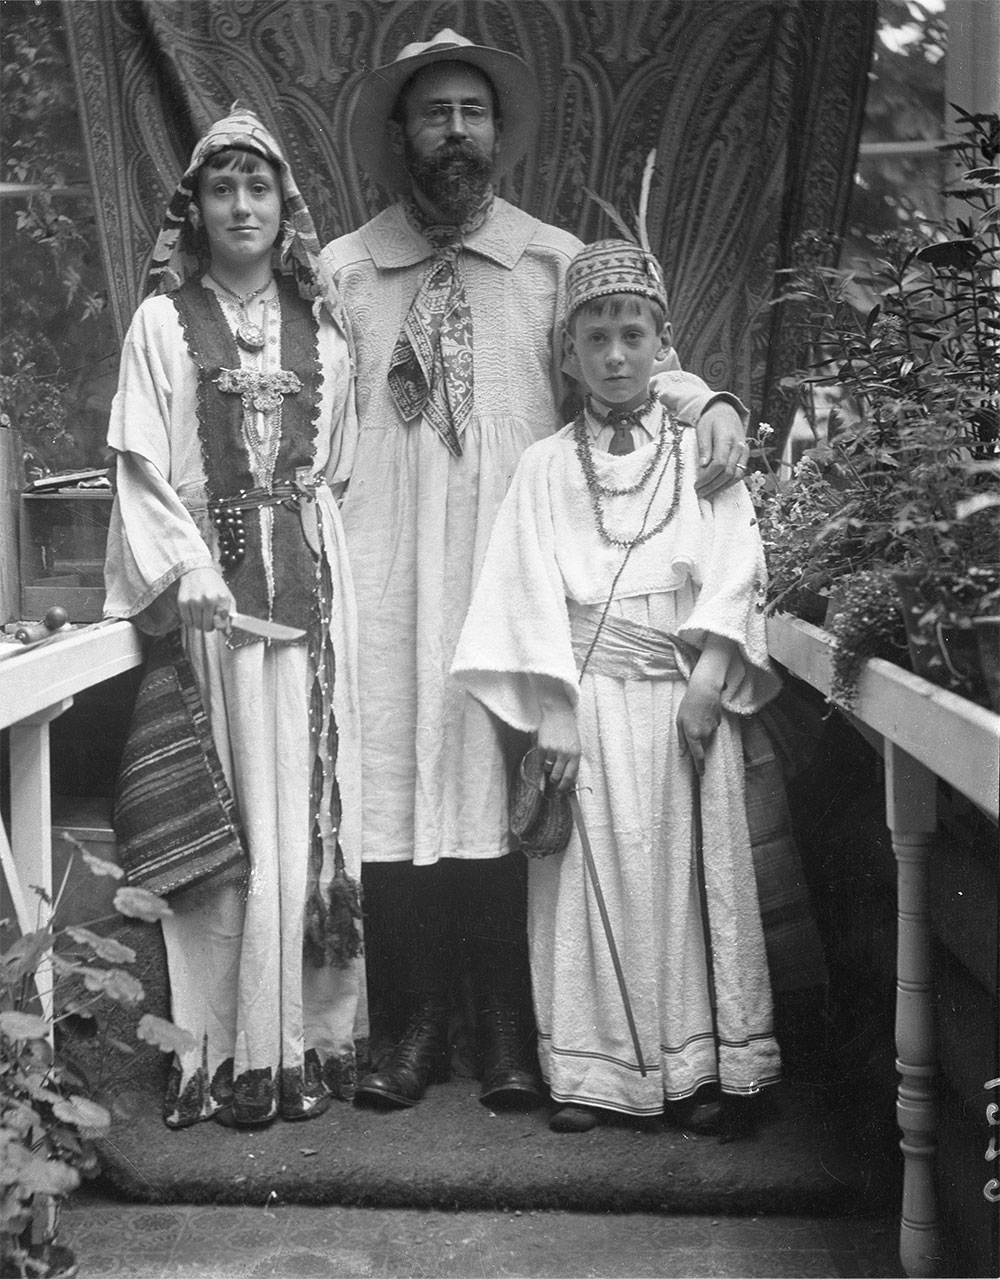 (2) Family portrait with Prof. John L. Myres and his two sons, one donning a Rhodian robe now in the Ashmolean Museum (EA1960.106), Oxford 1912. School of Archaeology, University of Oxford, HEIR image 33956